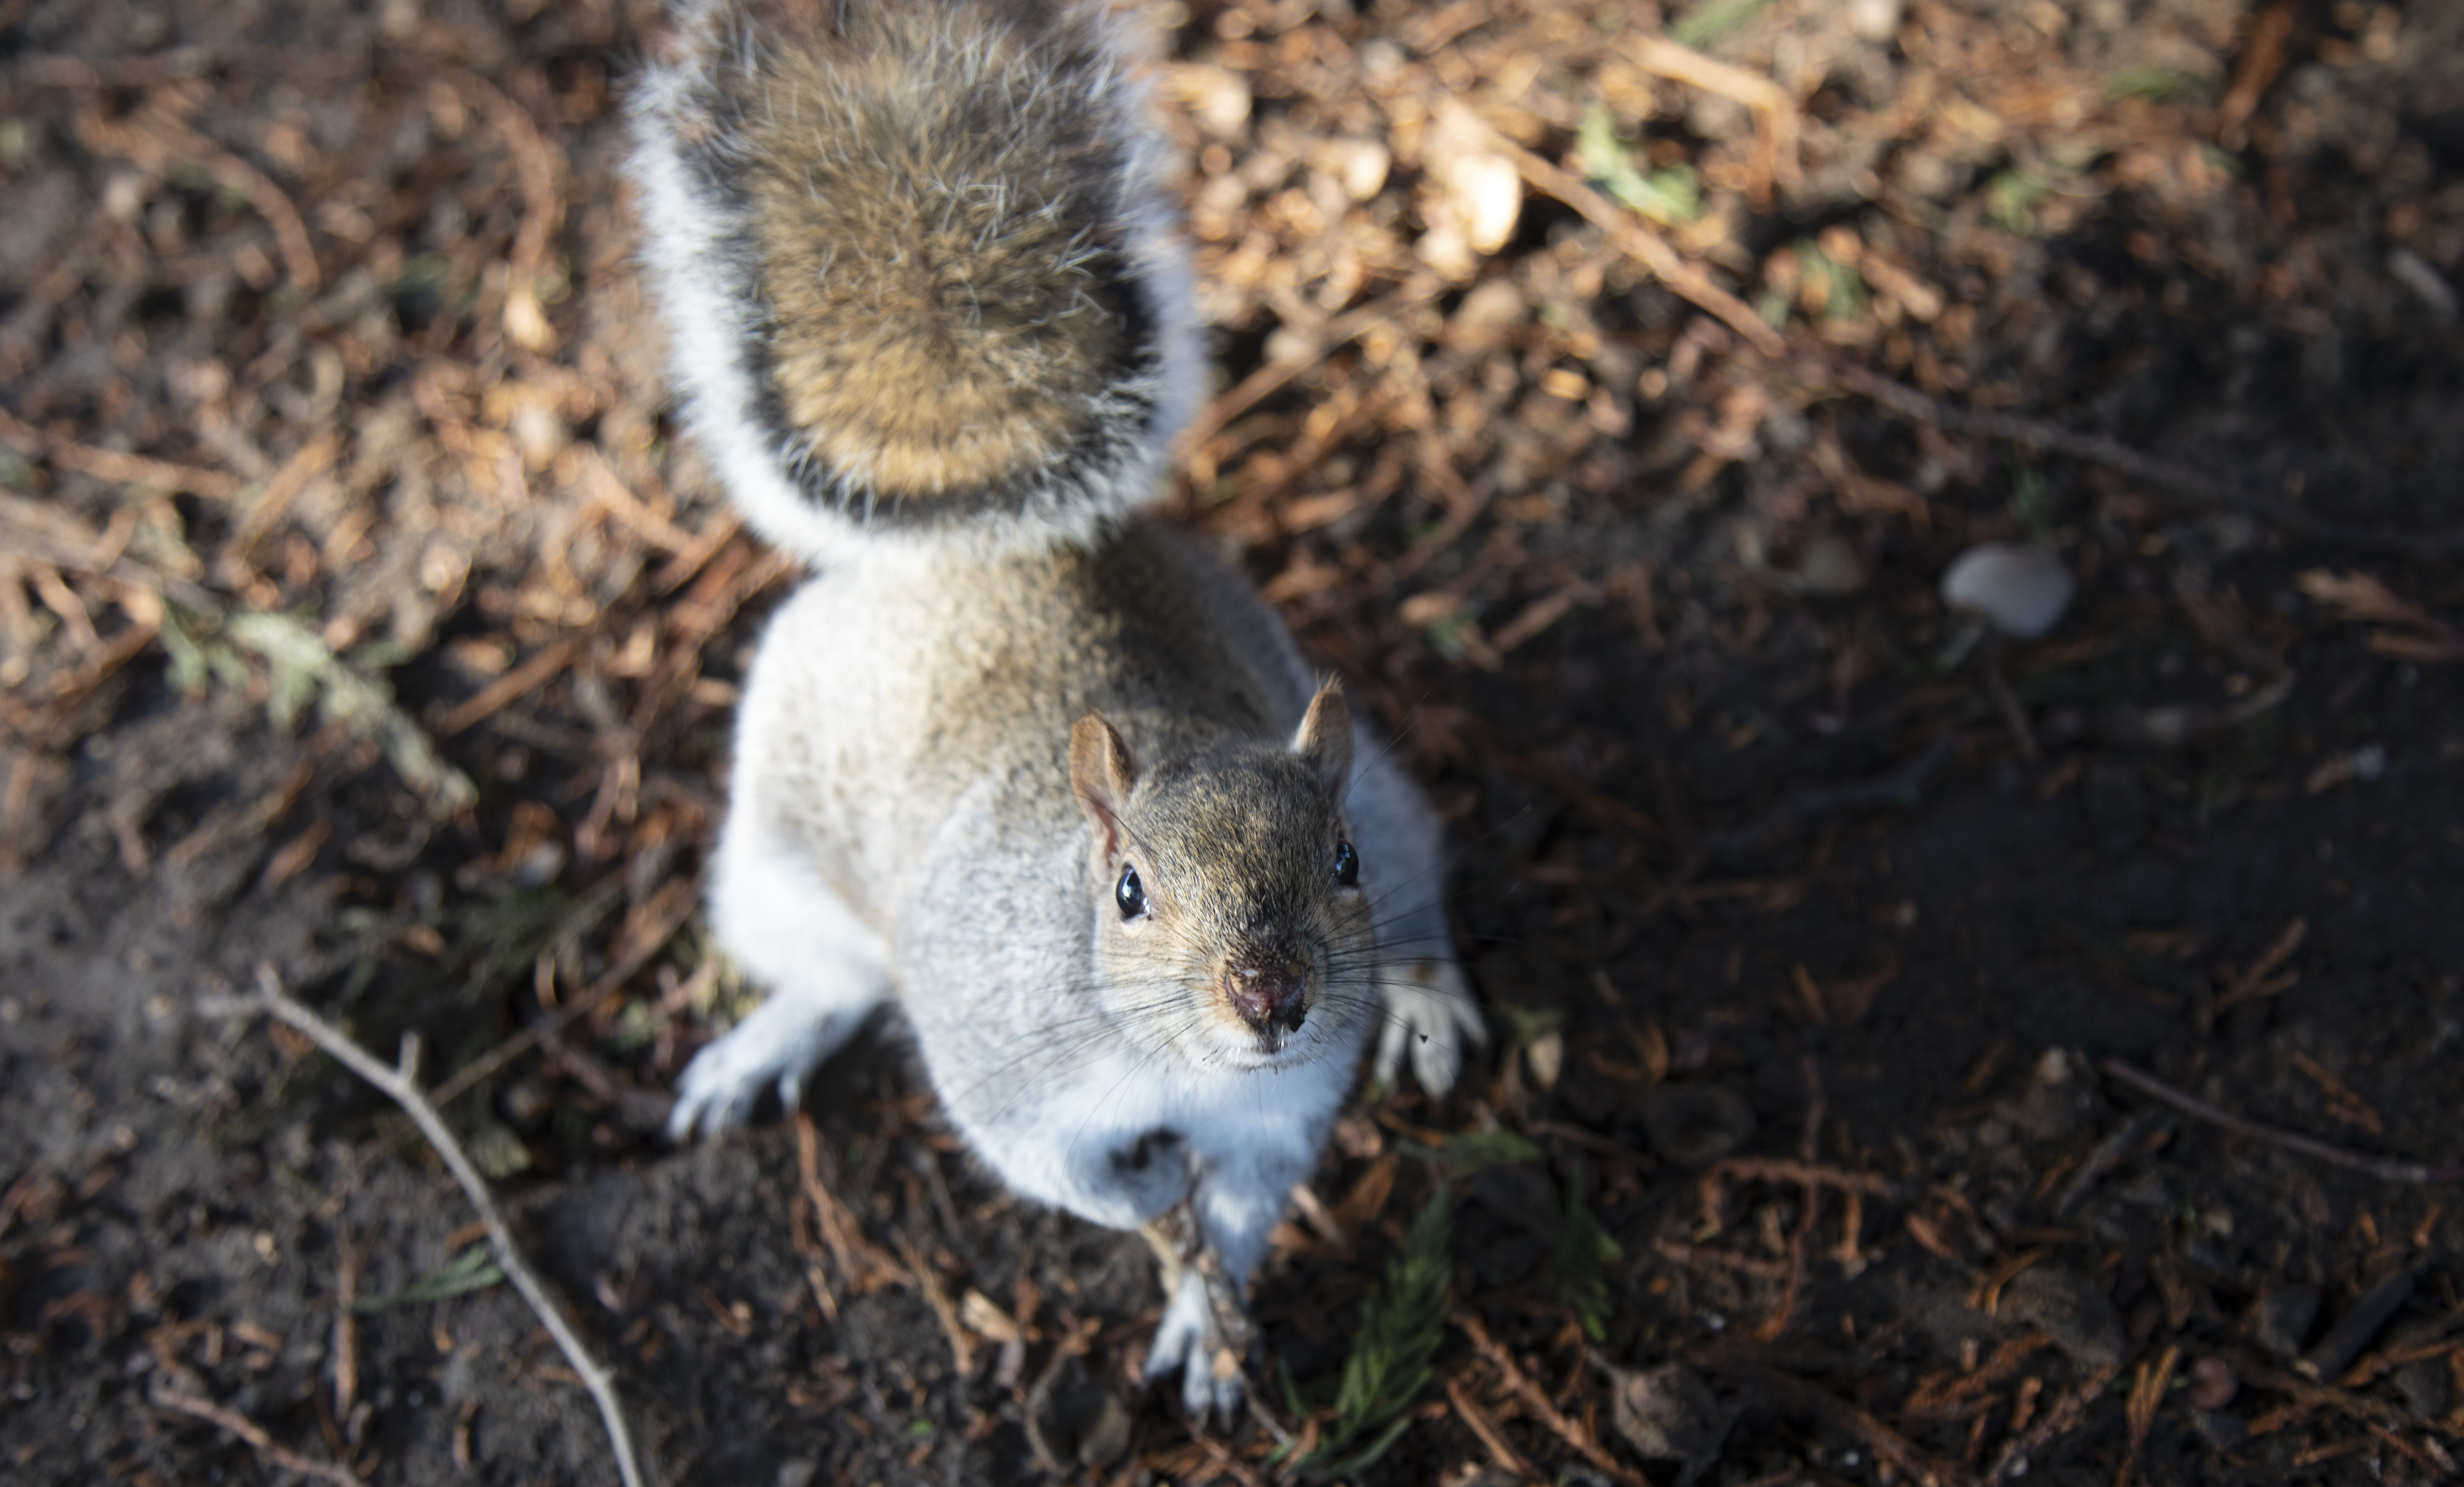 The Other Twitterverse: Squirrels Eavesdrop On Birds, Researchers Say